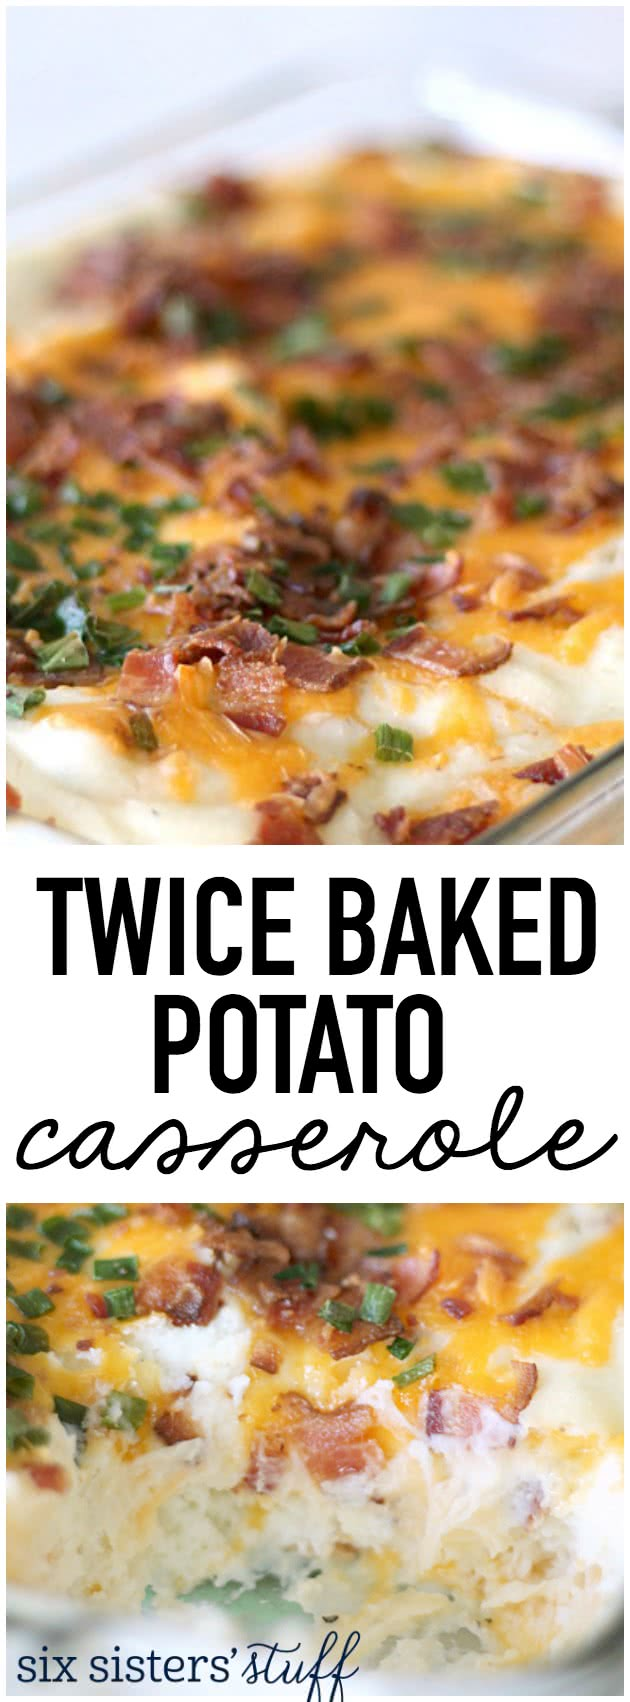 This Twice Baked Potato Casserole from SixSistersStuff.com is the most amazing side dish!